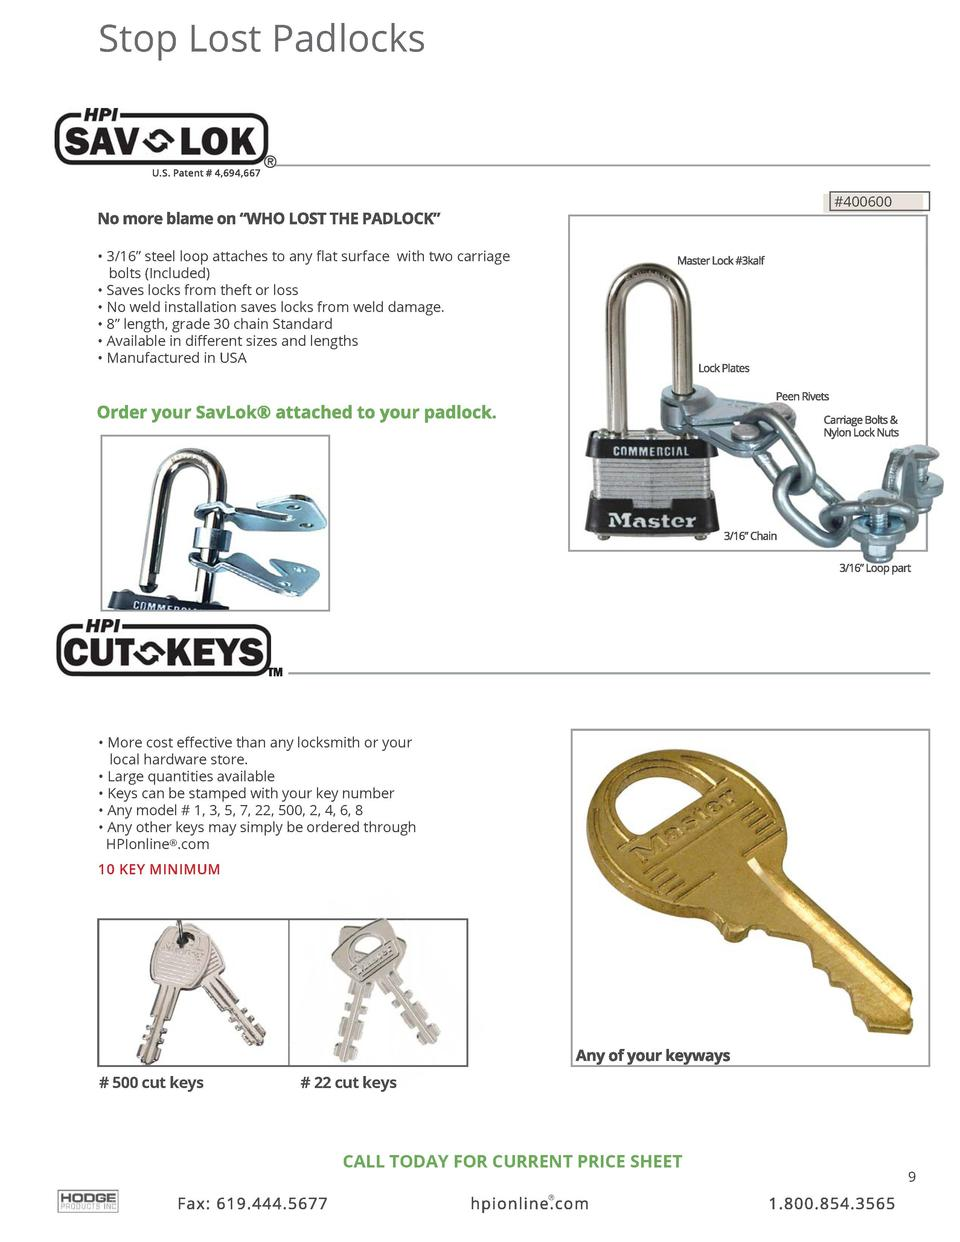 Stop Lost Padlocks   400600      3 16    steel loop attaches to any    at surface with two carriage bolts  Included      S...